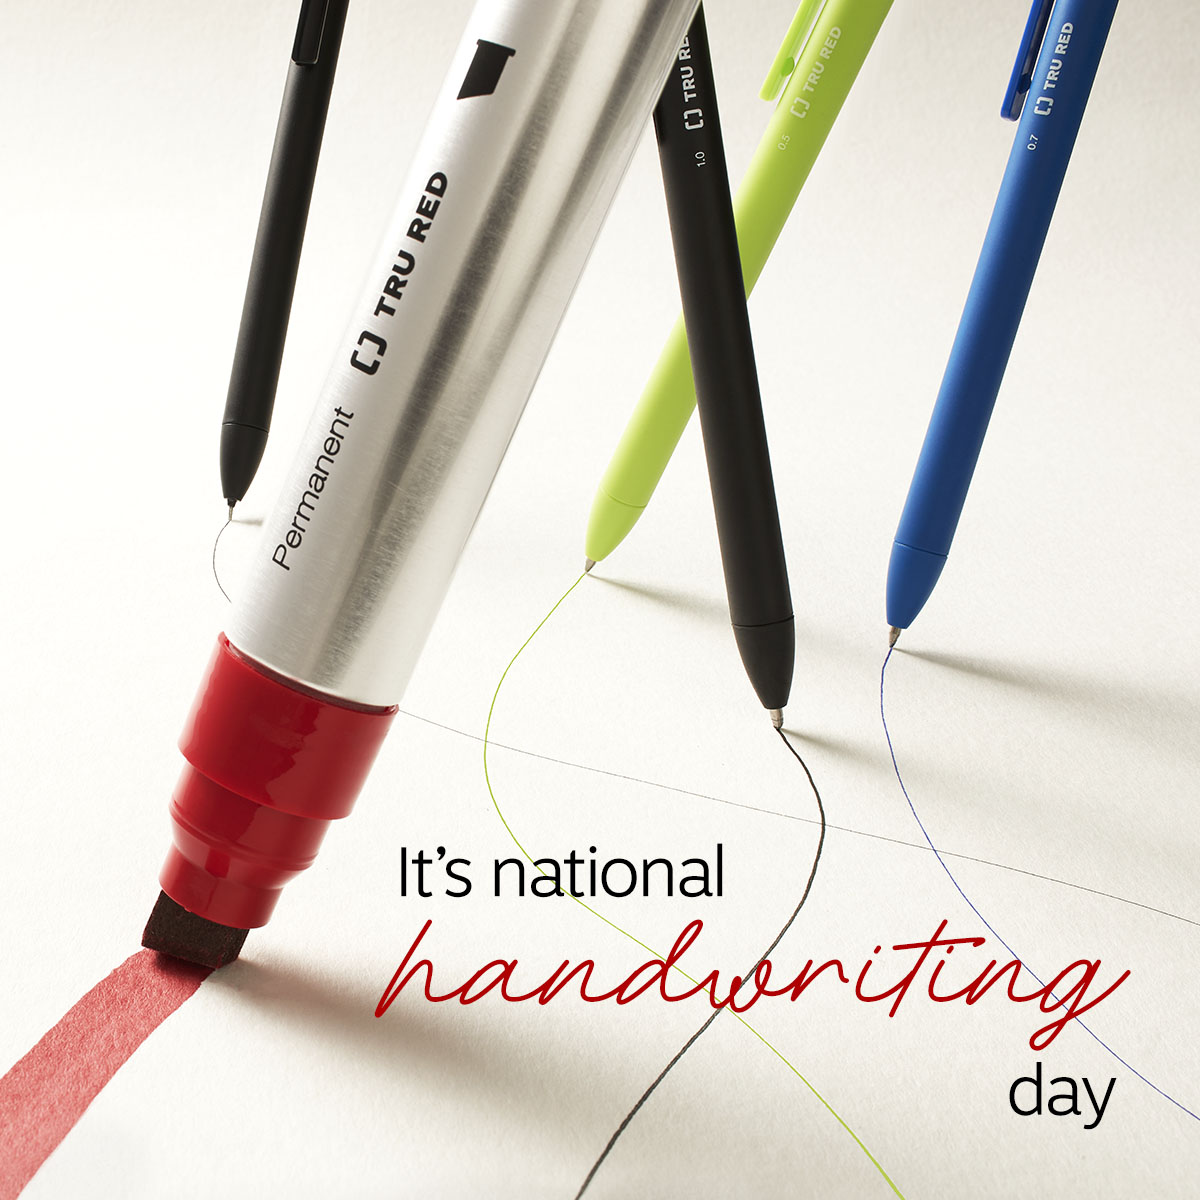 Lefties, cursive writers, all-caps printers and doodlers, do your thing! It's #NationalHandwritingDay so let yours shine. https://t.co/sabsOWX36p